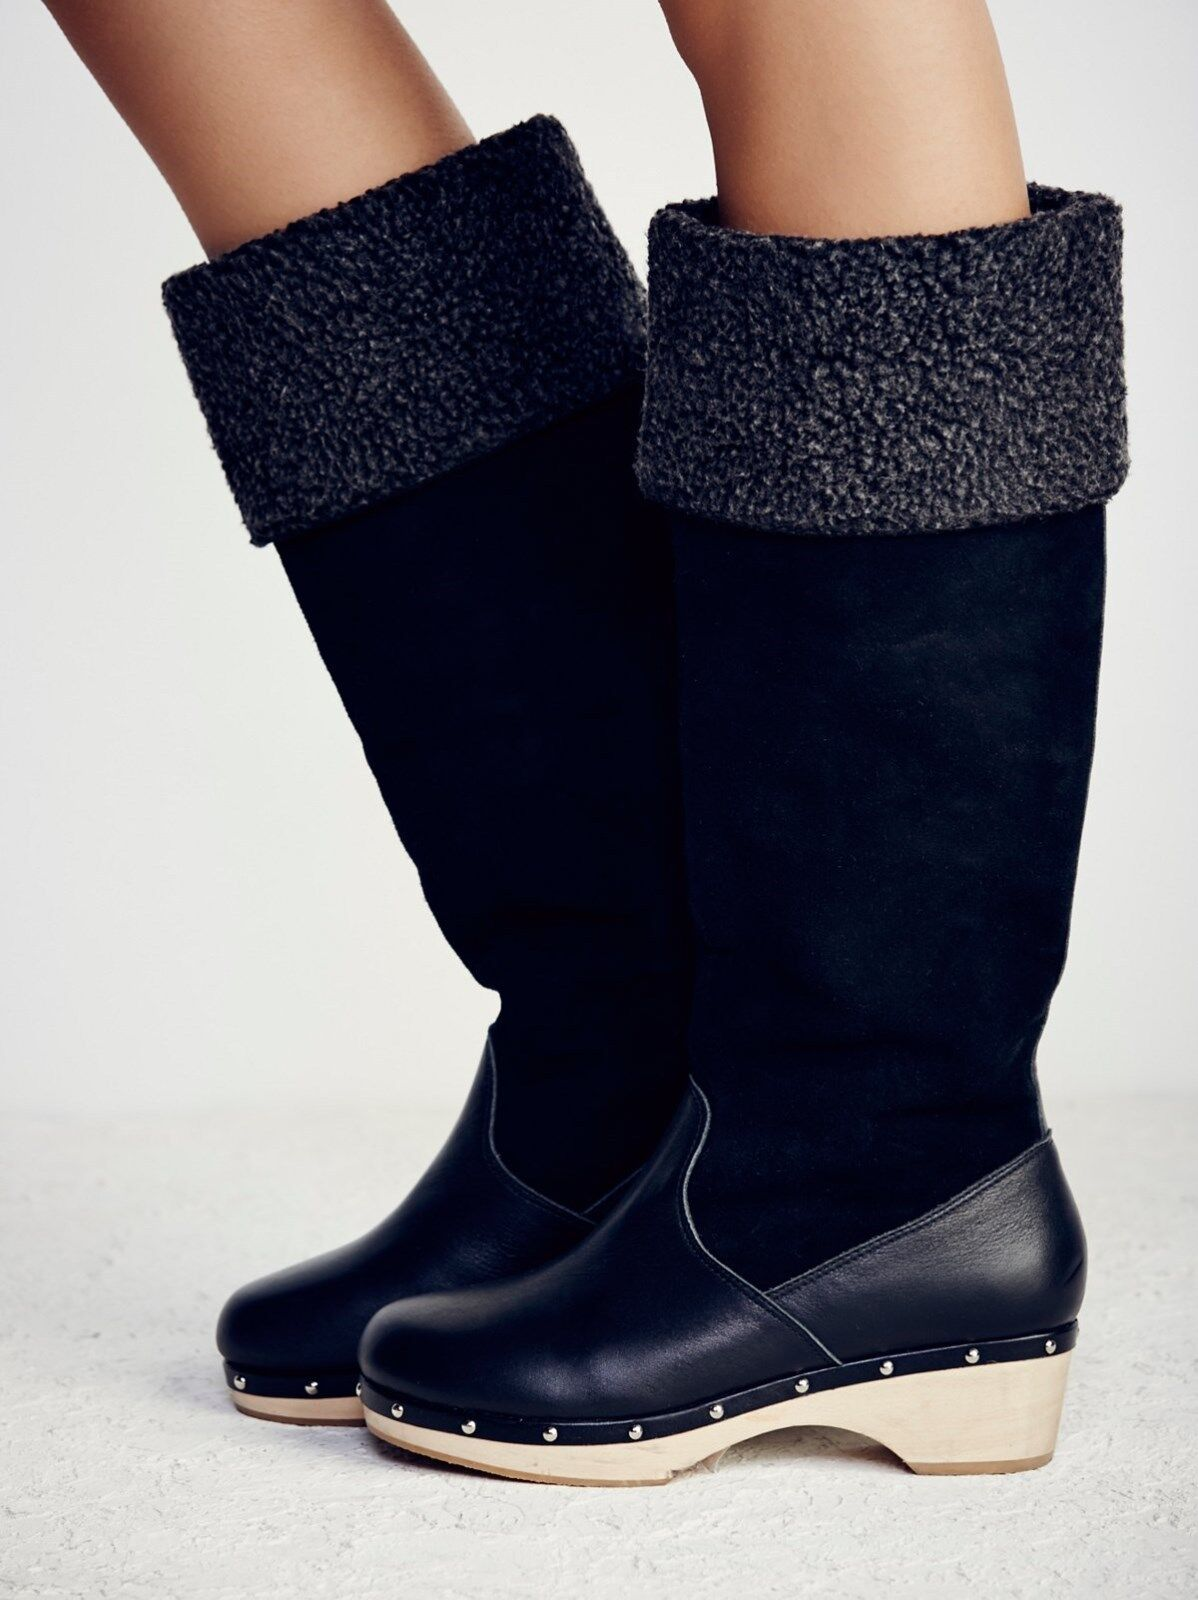 FREE PEOPLE: Intentionally Blank Canopy Tall Clog Boot 36 Eu/ 5.5 US Ret: 348